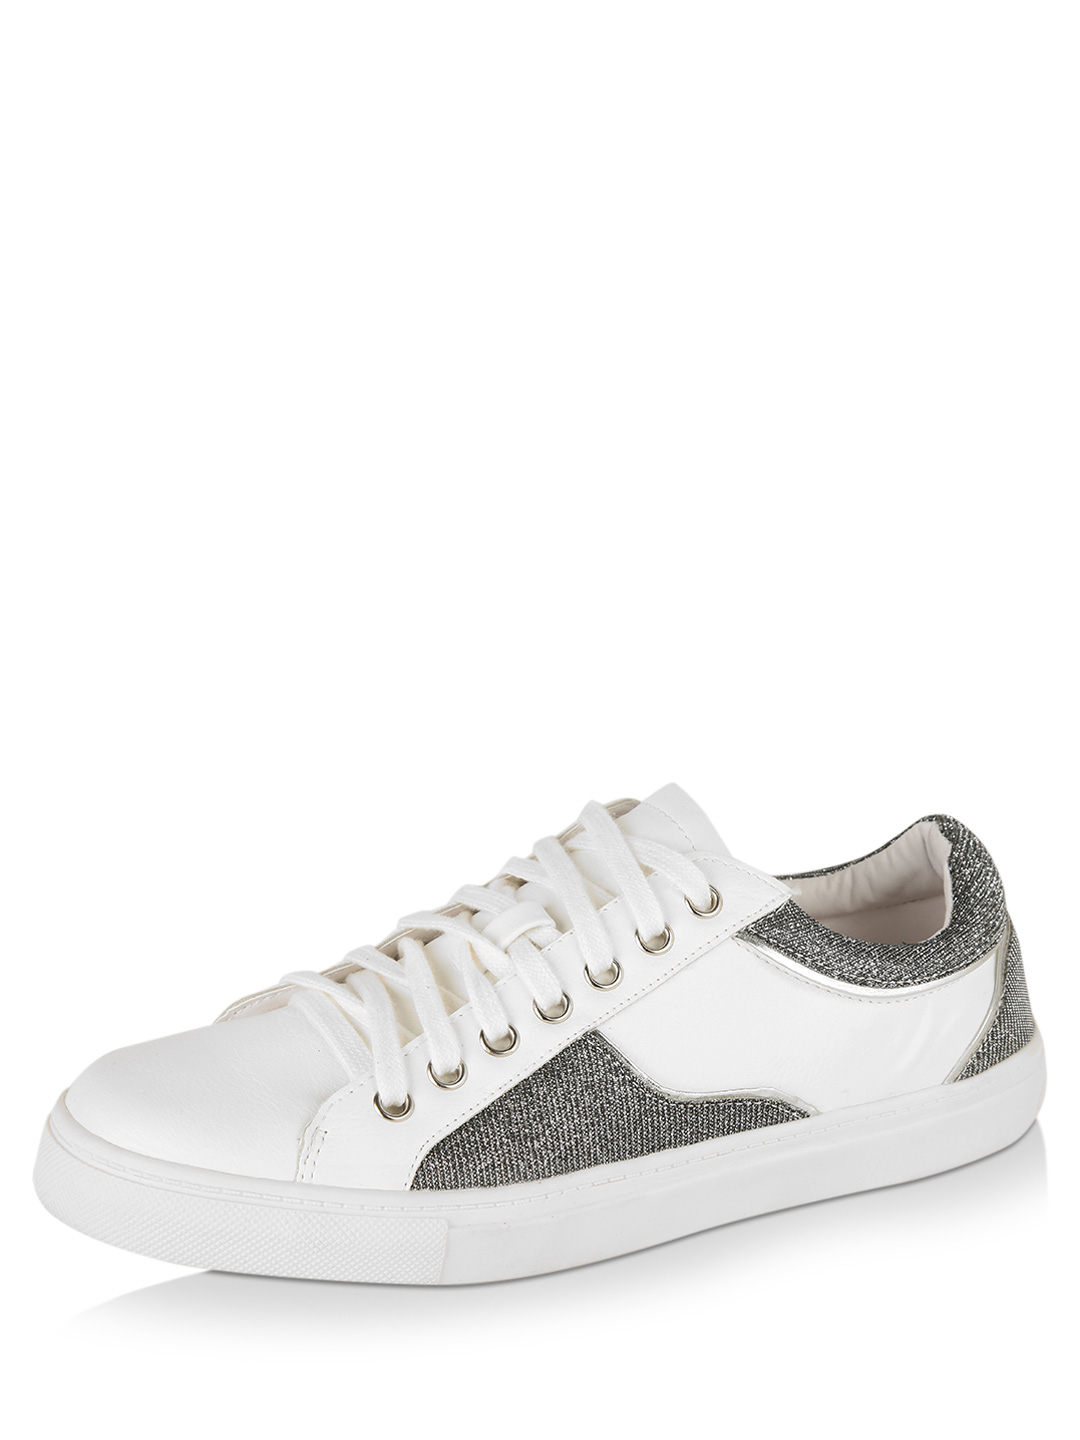 New Look White/Silver Glitter Mix Lace-up Sneakers 1